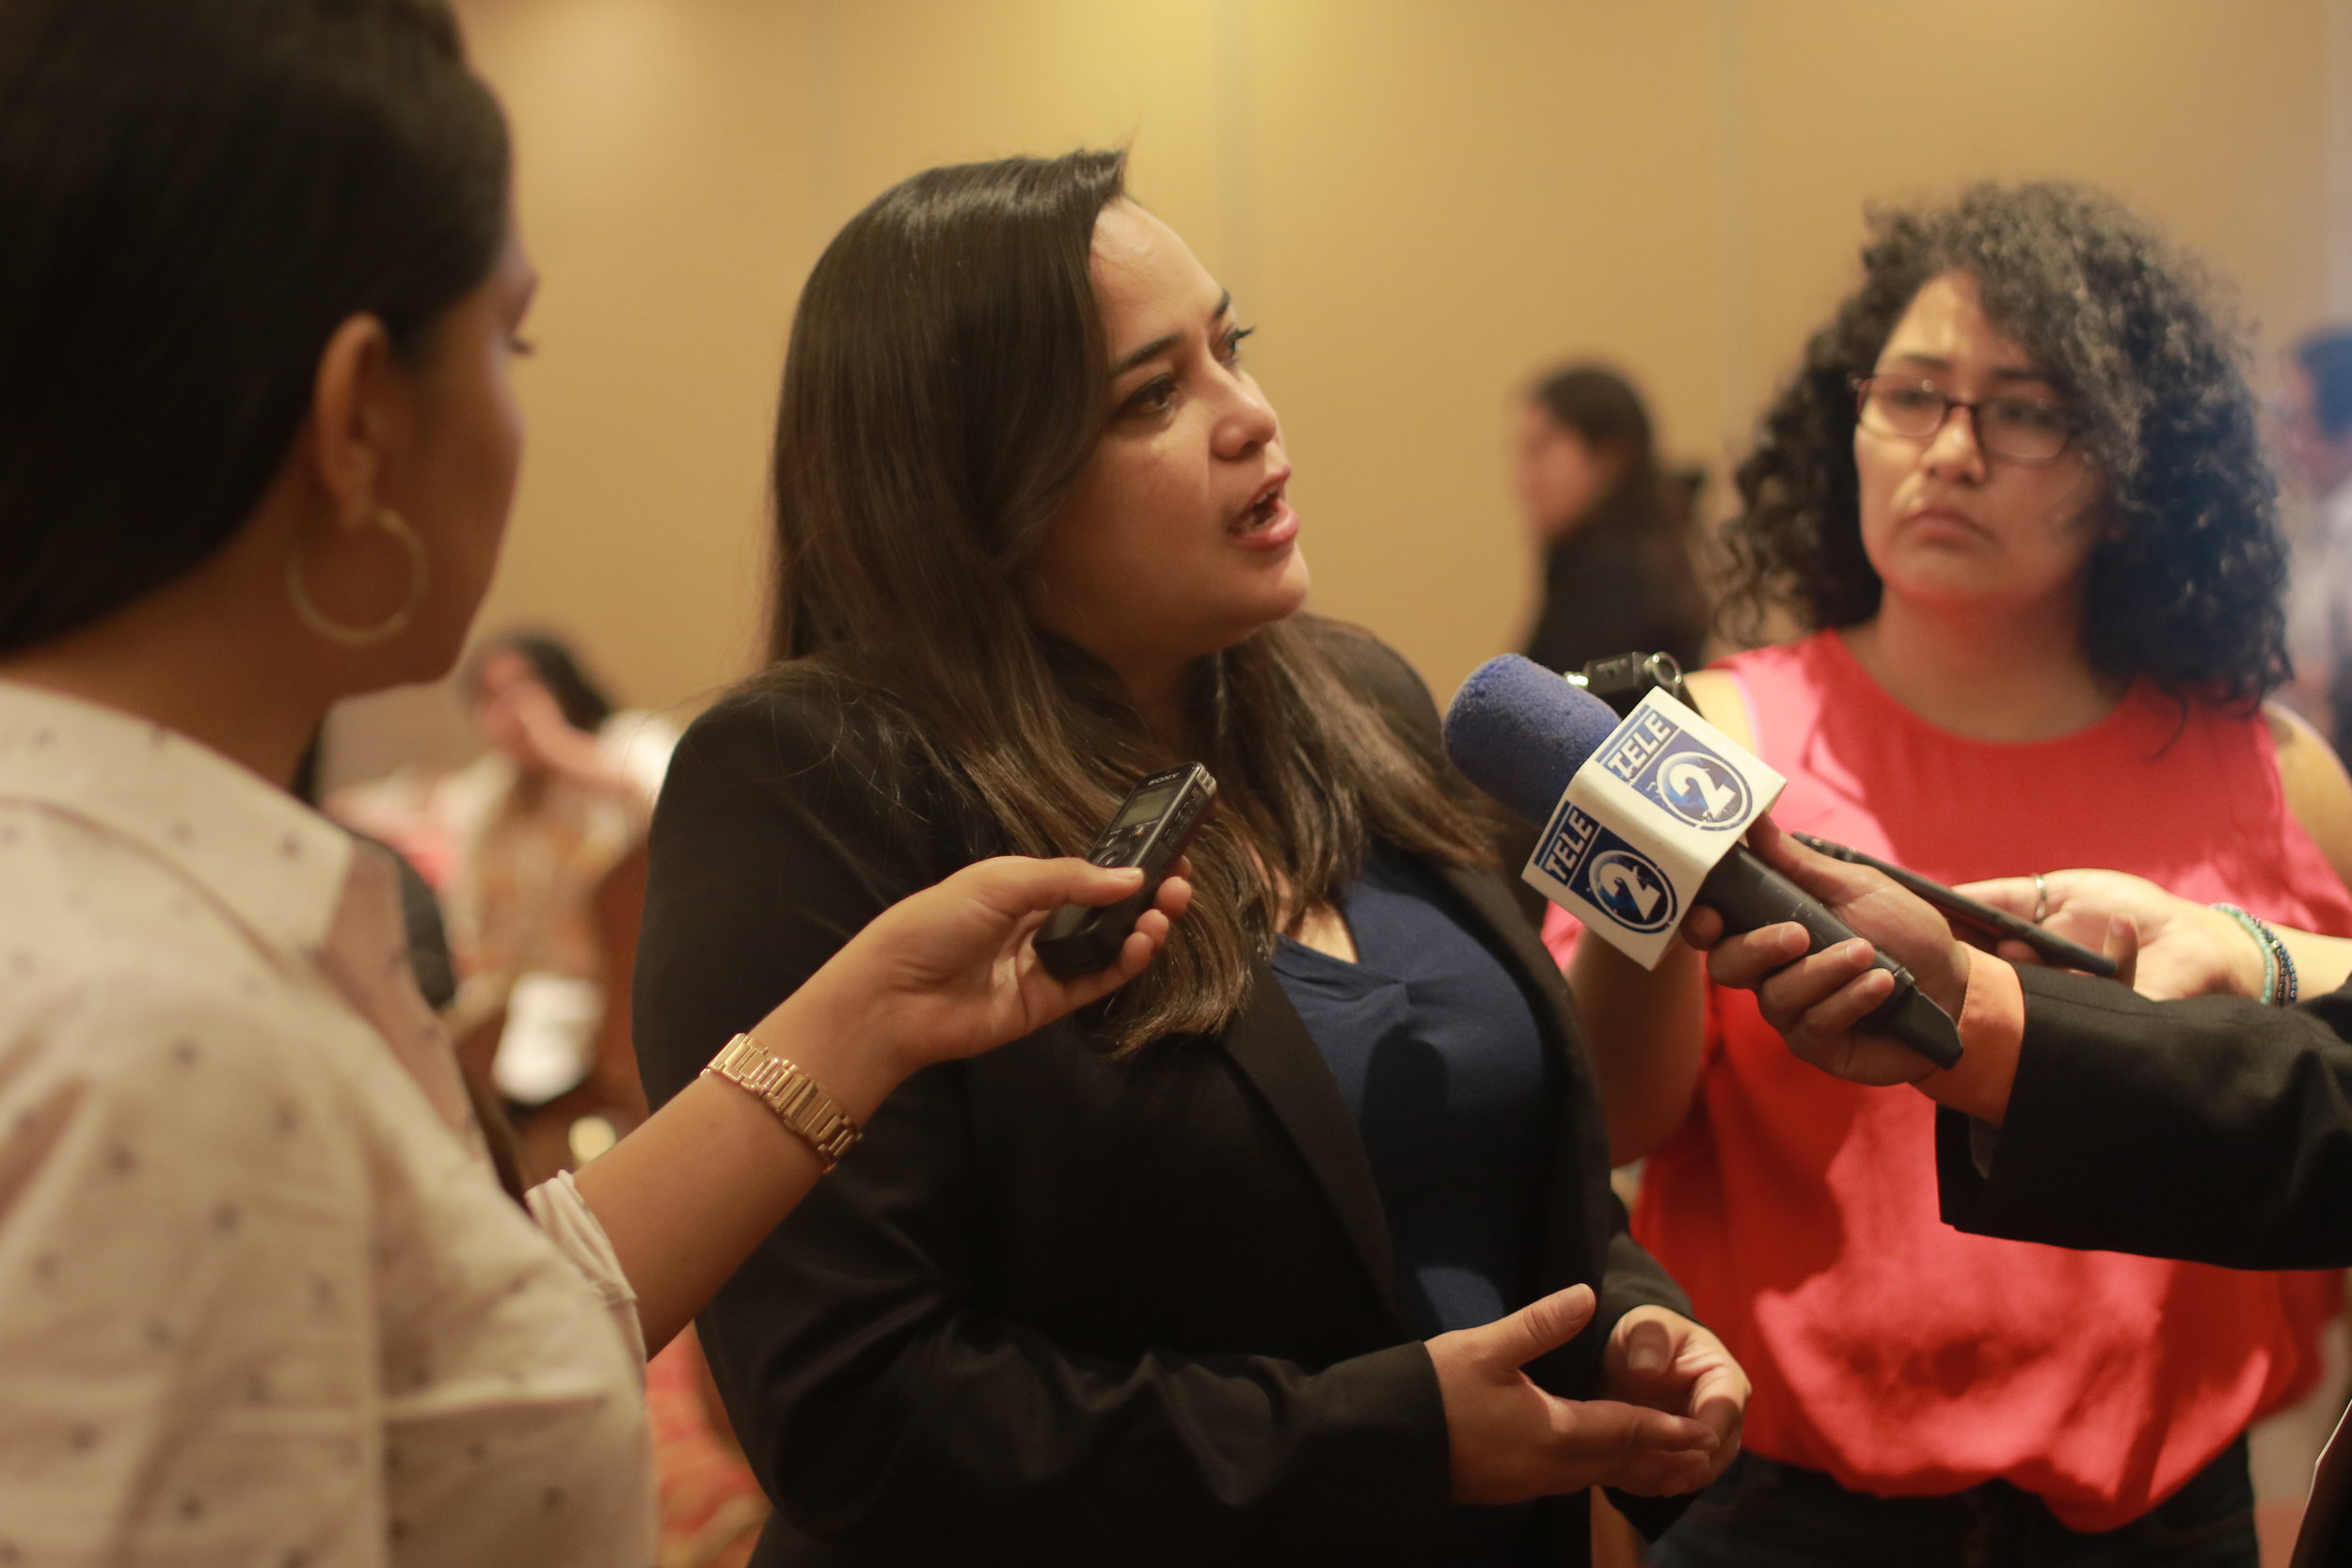 Rina Montti, National Coordinator of Cristosal's Monitoring Unit, answers questions from journalists after presenting the 2017 Report on Forced Displacement in El Salvador. / Photo Cristosal